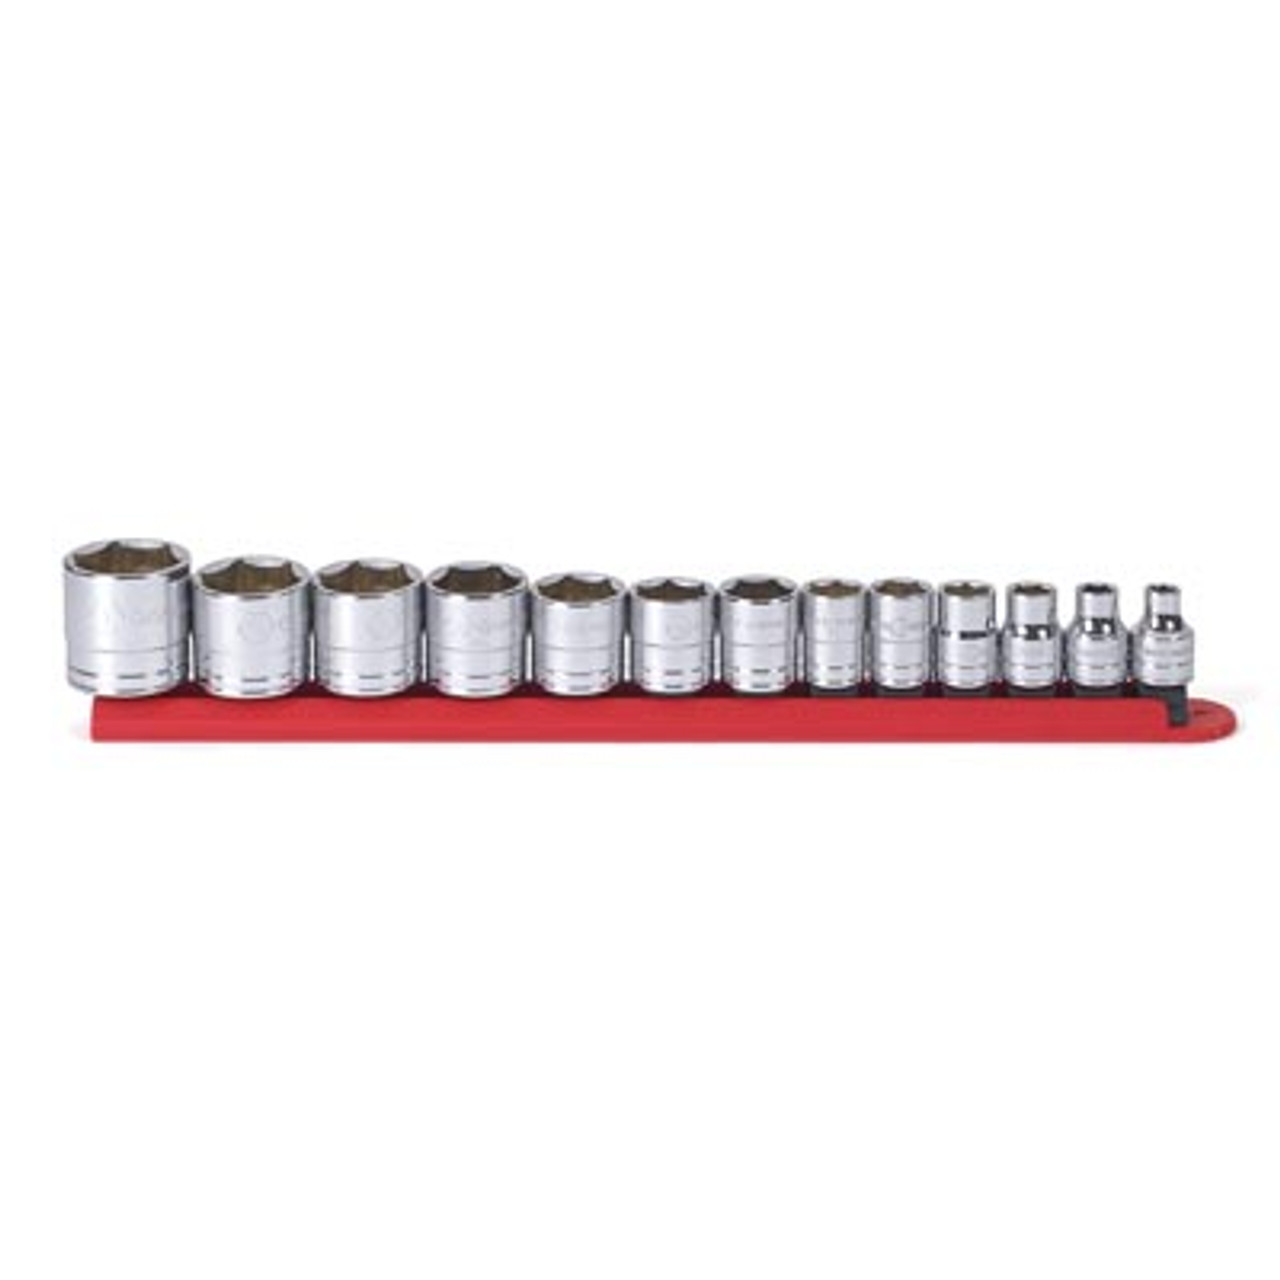 13-Piece 3//8 in Drive 6-Point Metric Magnetic Impact Socket Set GRY-1213MG New!